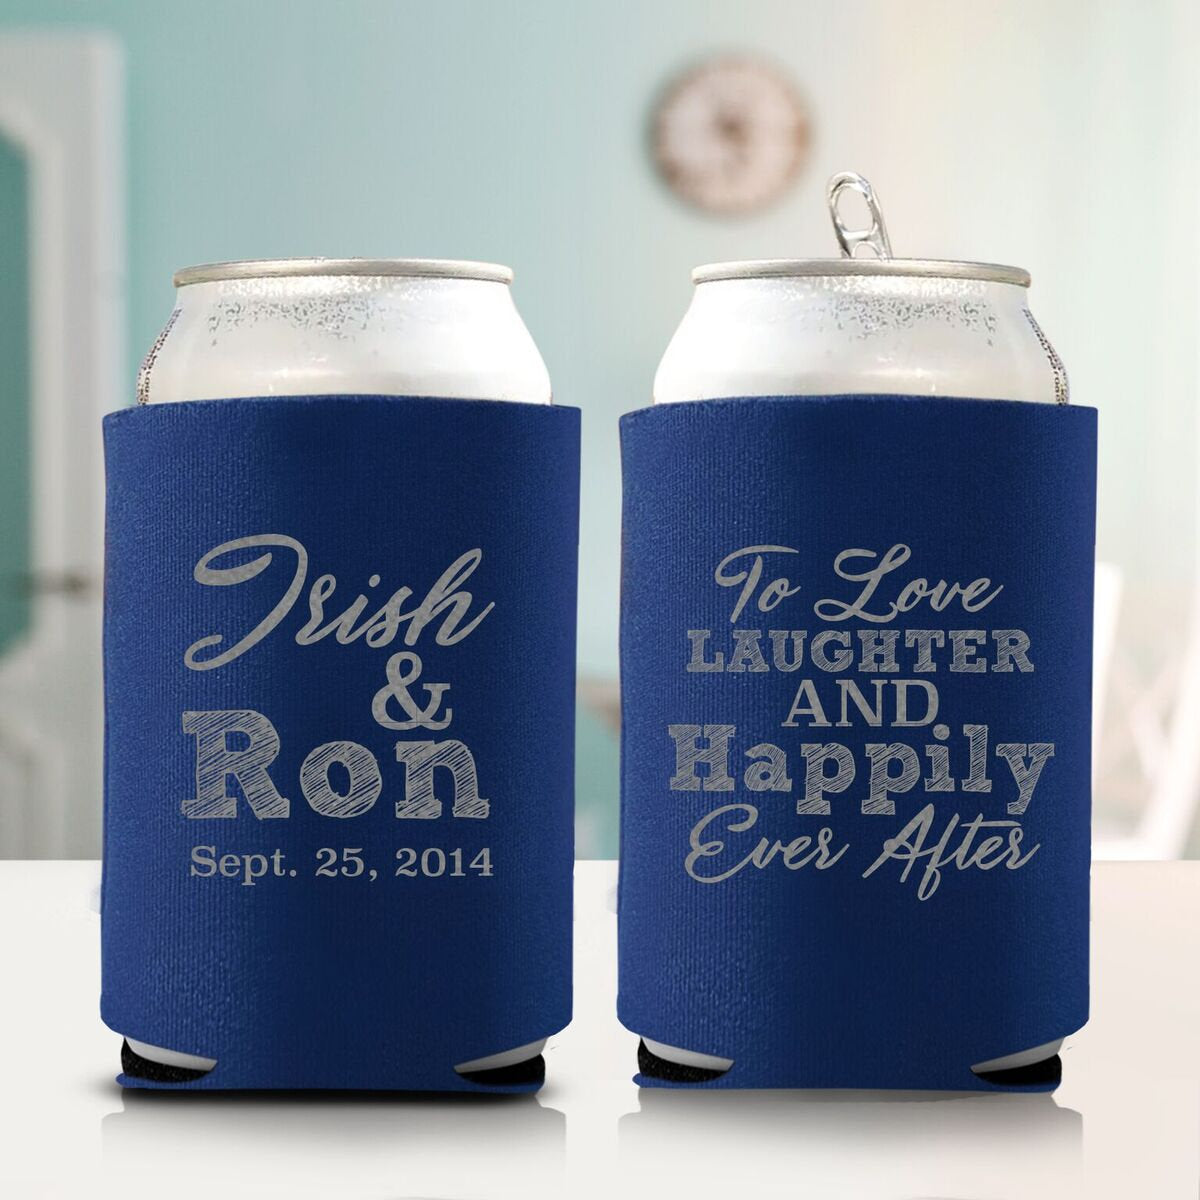 To Love Laughter and Happily Ever After Koozie